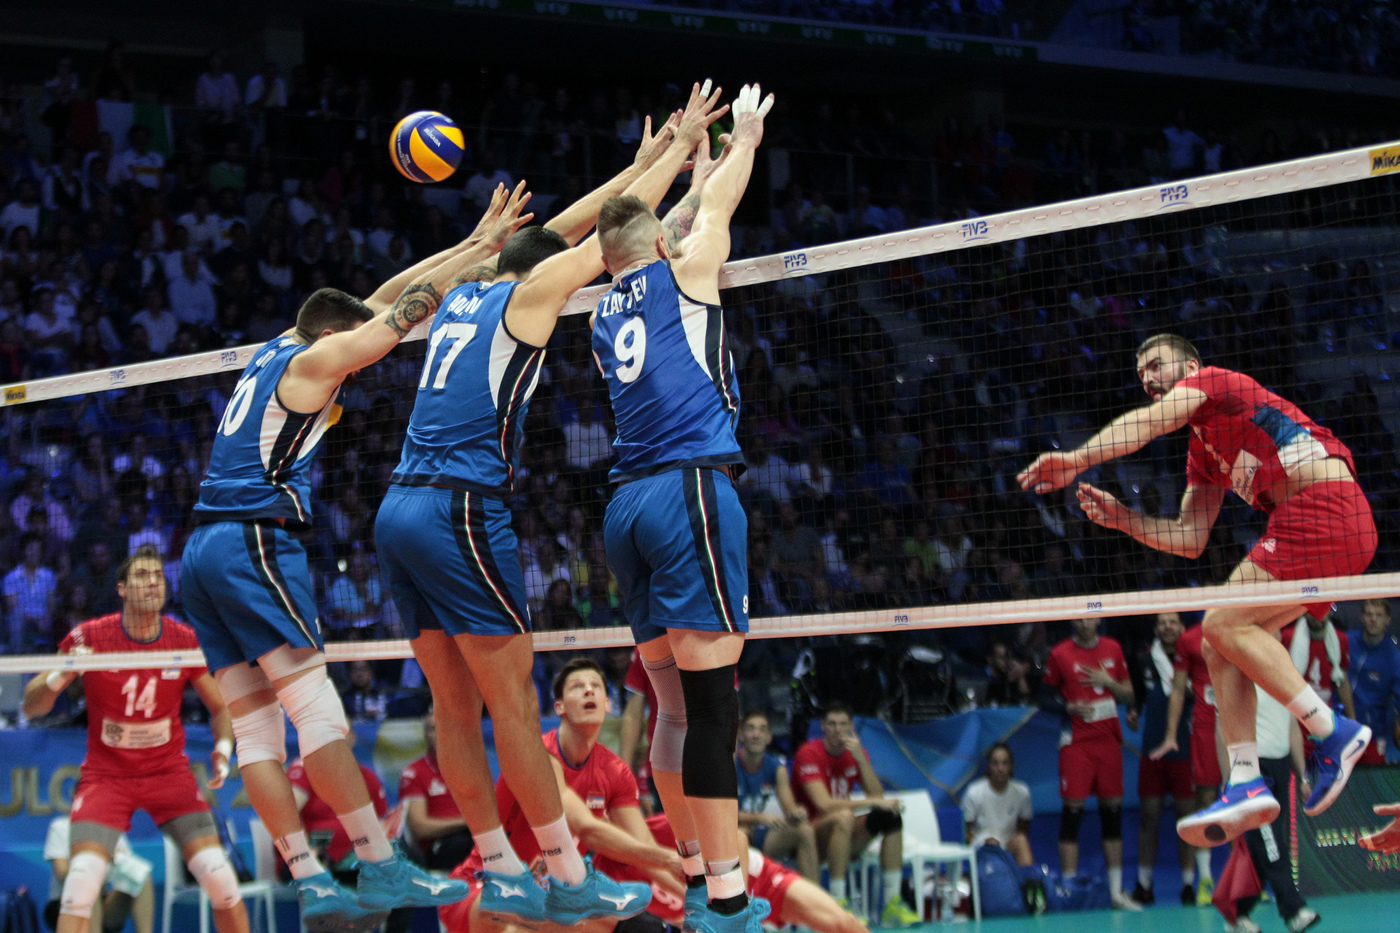 Volley, l'Italia ko all'esordio nella Final six: vince la Serbia 3-0